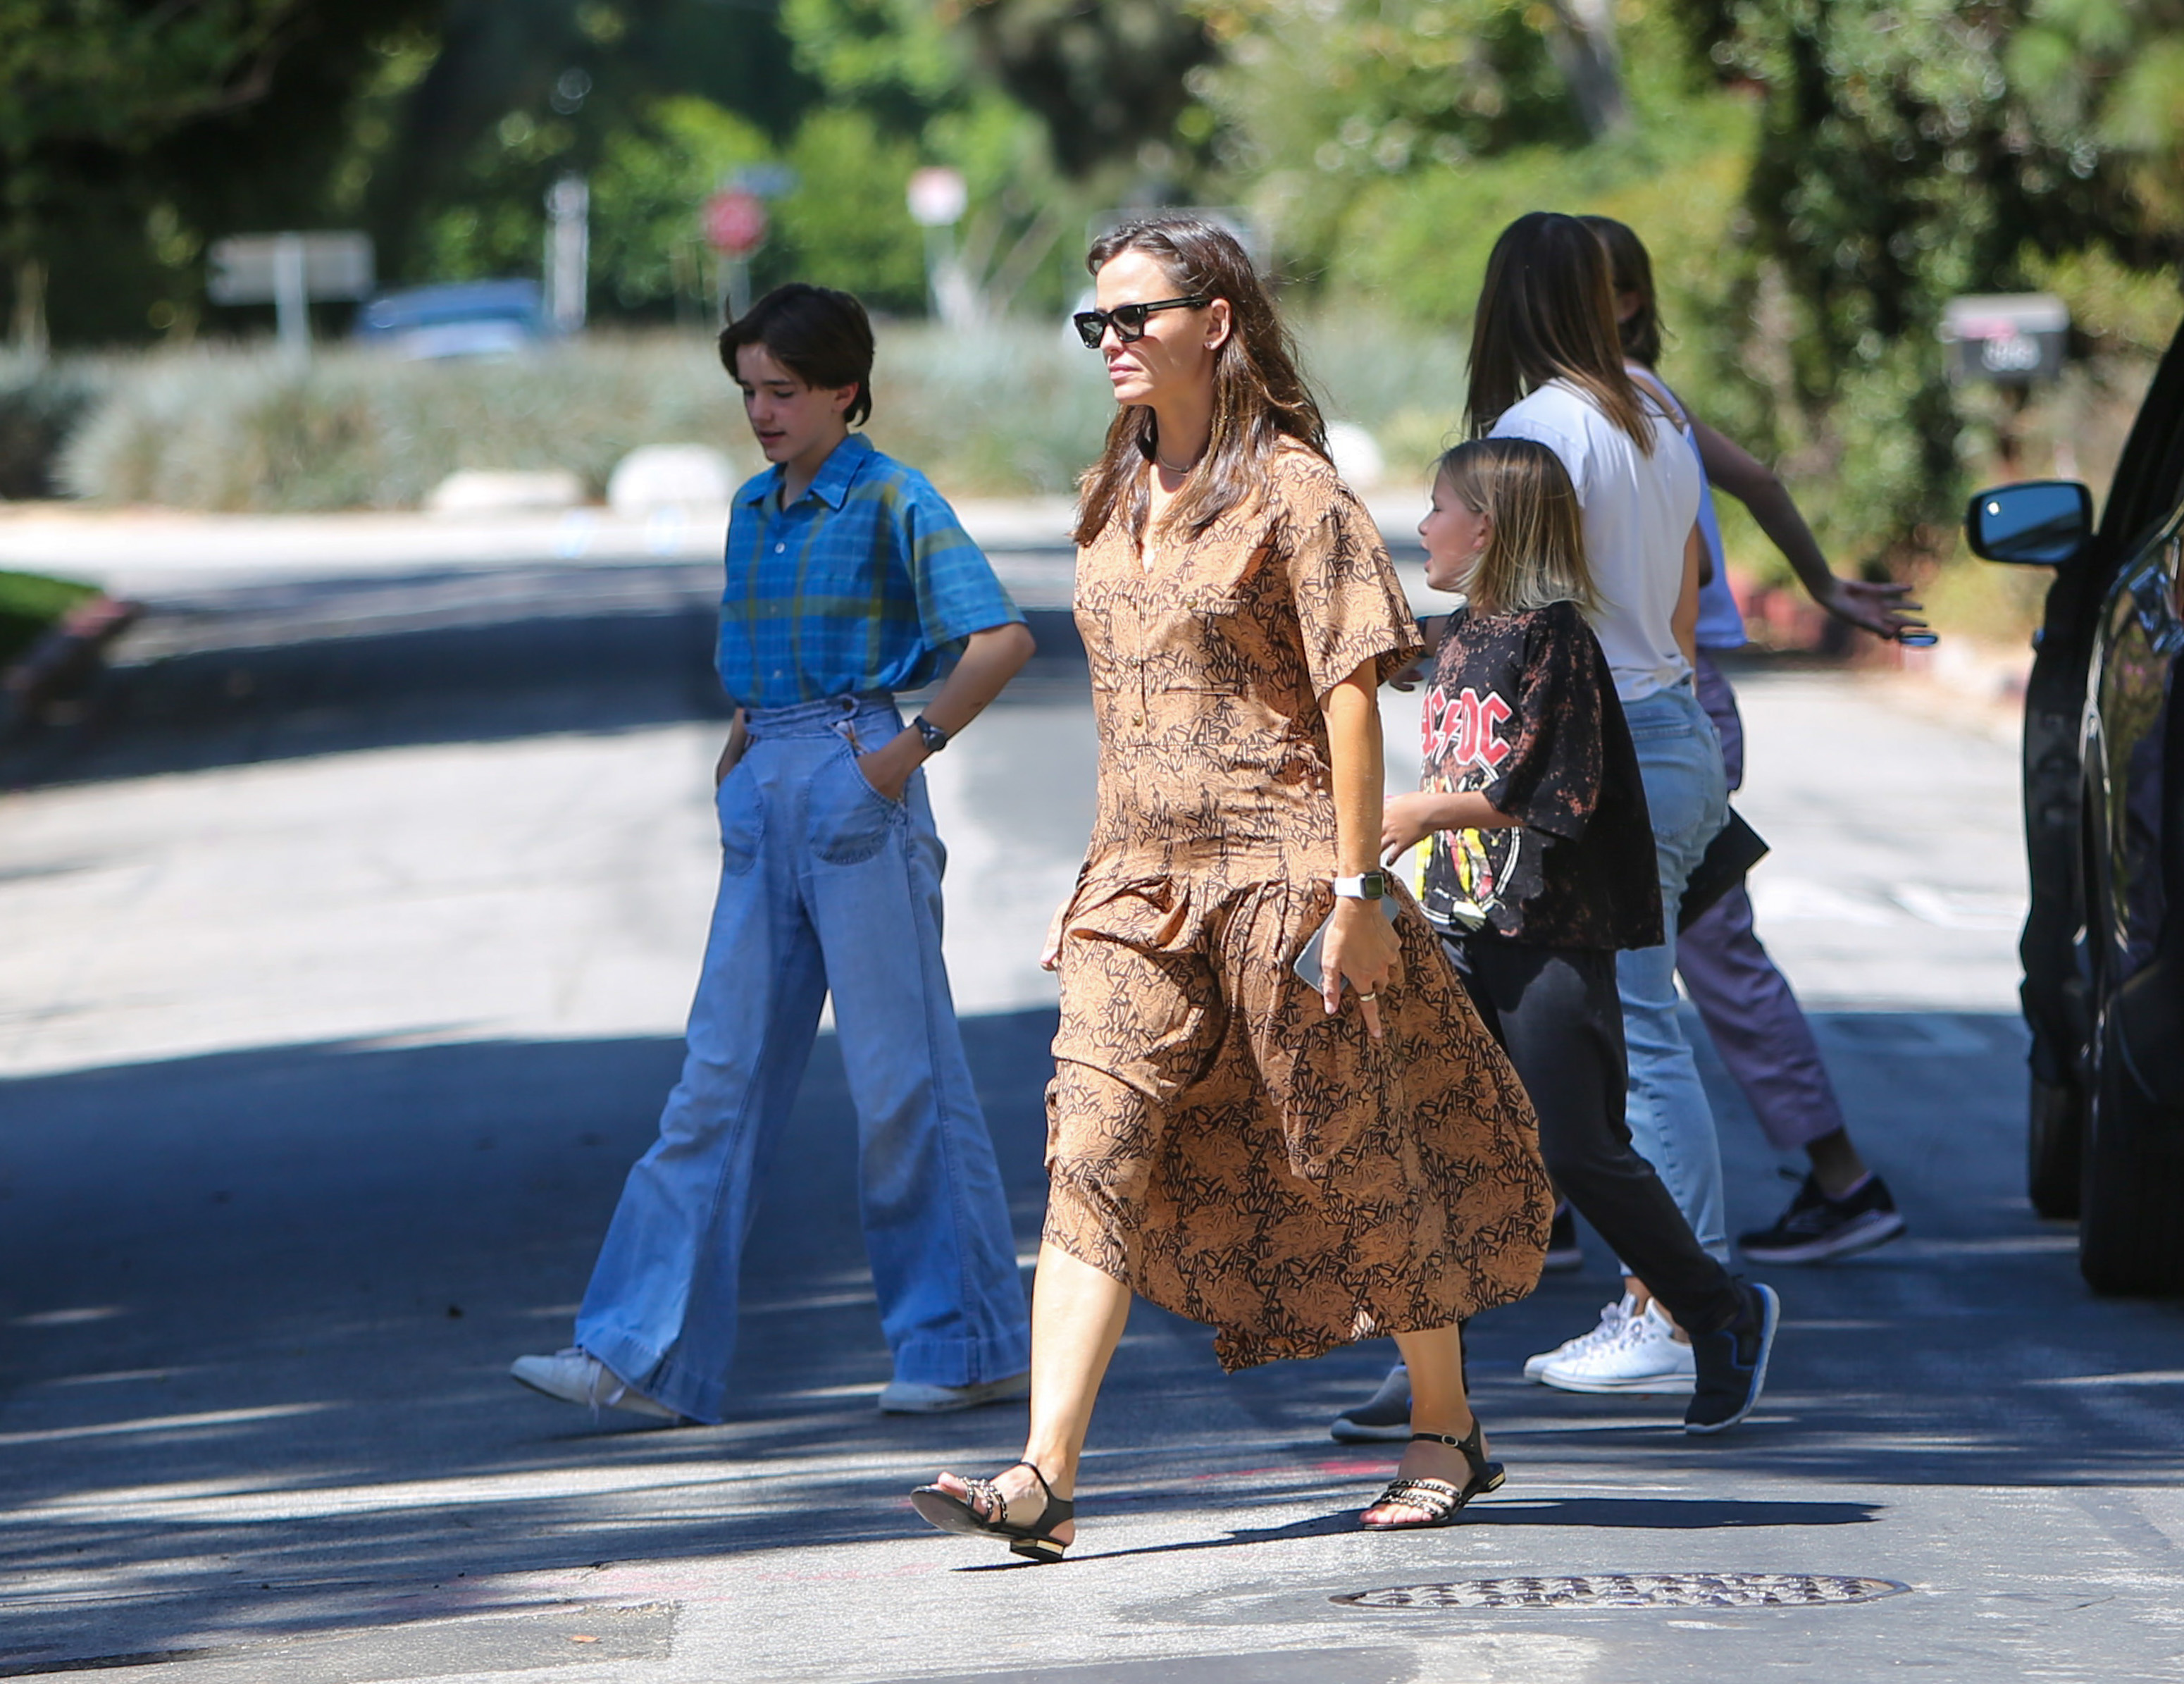 Jennifer Garner is seen with Violet, Seraphina and Samuel Affleck in Los Angeles, California. NON-EXCLUSIVE September 11, 2021 210911BG004 Los Angeles, CA www.bauergriffin.com. 11 Sep 2021 Pictured: Jennifer Garner. Photo credit: BG004/Bauergriffin.com / MEGA TheMegaAgency.com +1 888 505 6342 (Mega Agency TagID: MEGA786259_009.jpg) [Photo via Mega Agency]